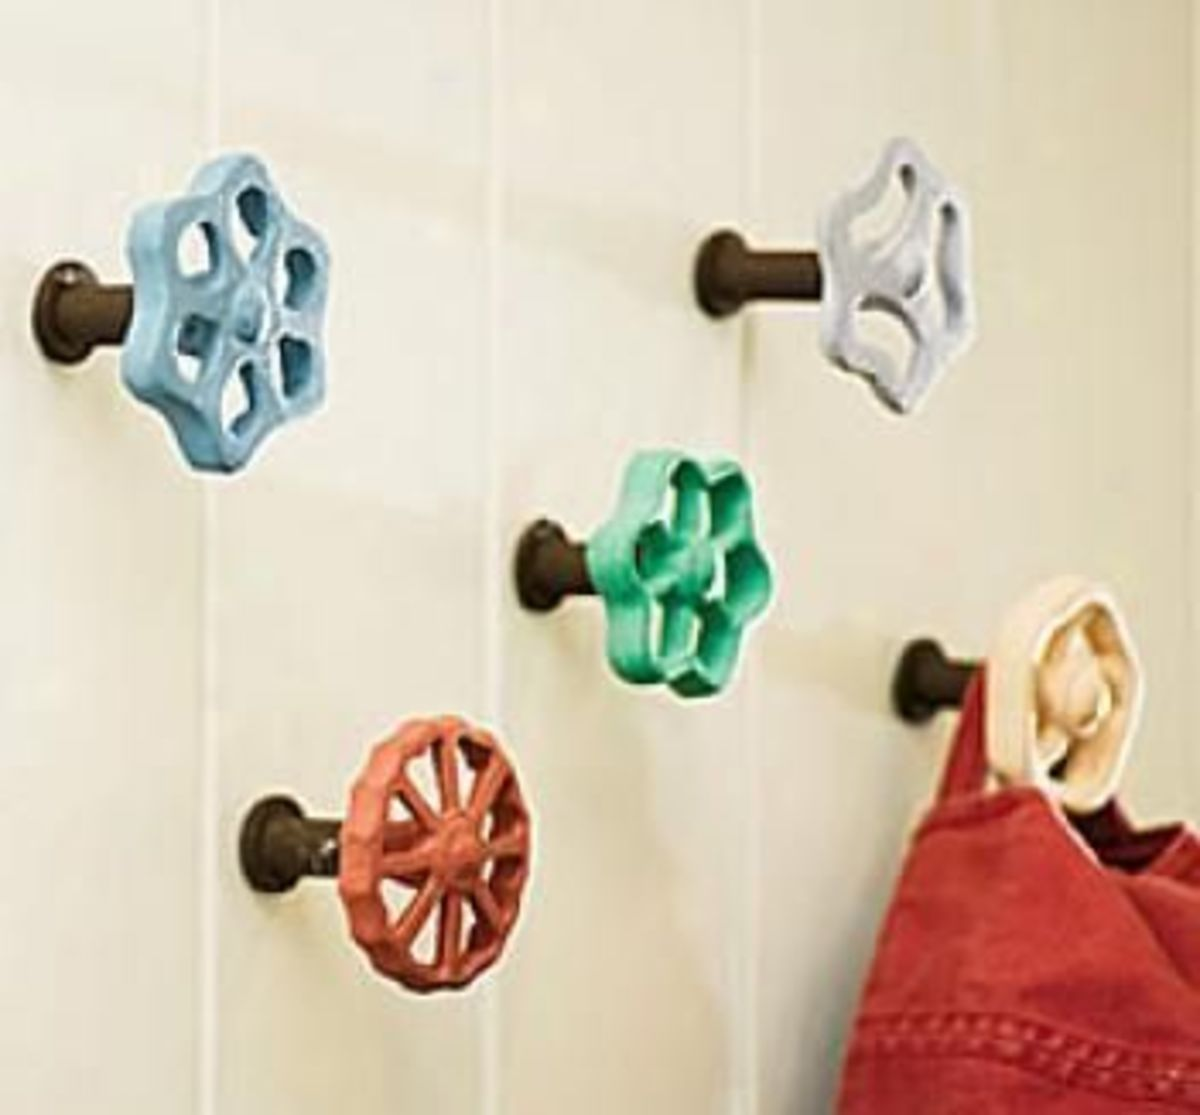 Outdoor faucet knobs are fun to collect and repurpose.